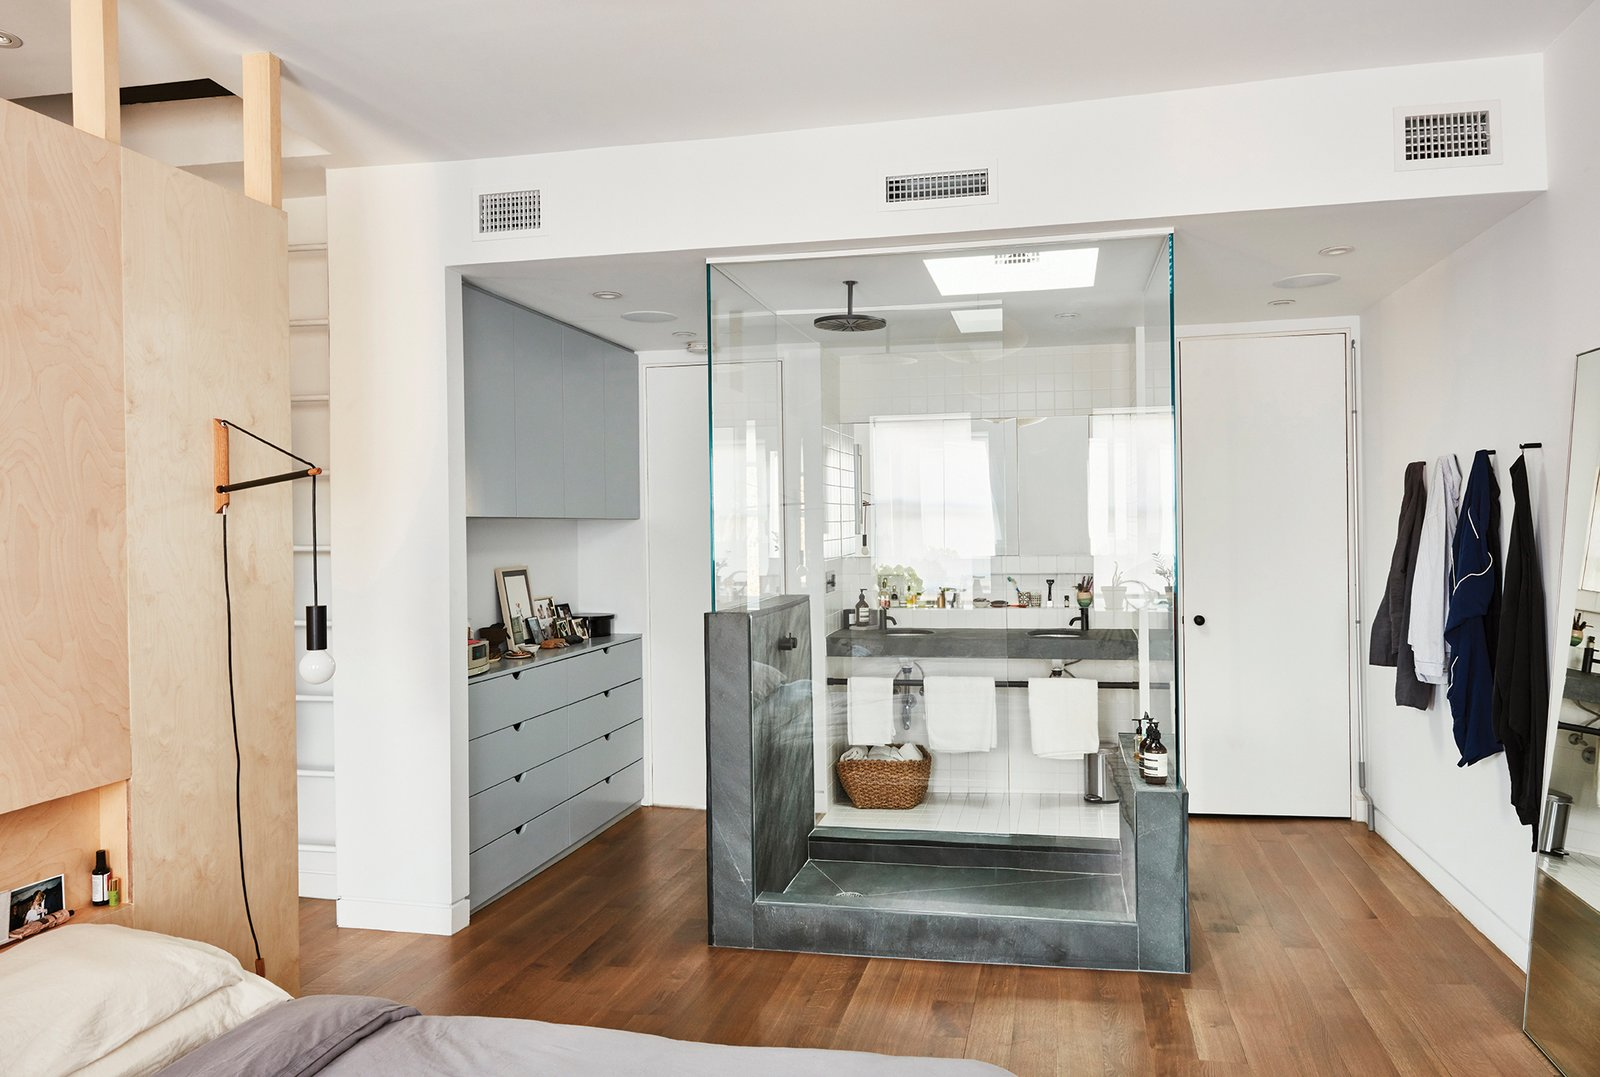 """Medium Hardwood, Bed, Bath, and Enclosed One of the boldest moves was the glass-encased shower inside the revamped master bedroom. """"Obviously, building that shower was not a cost-saving option,"""" says Keith, """"but we used green slate, which is not super expensive, either."""" The Architec sinks are from Duravit.  Best Bath Bed Enclosed Photos from Forever Changes"""